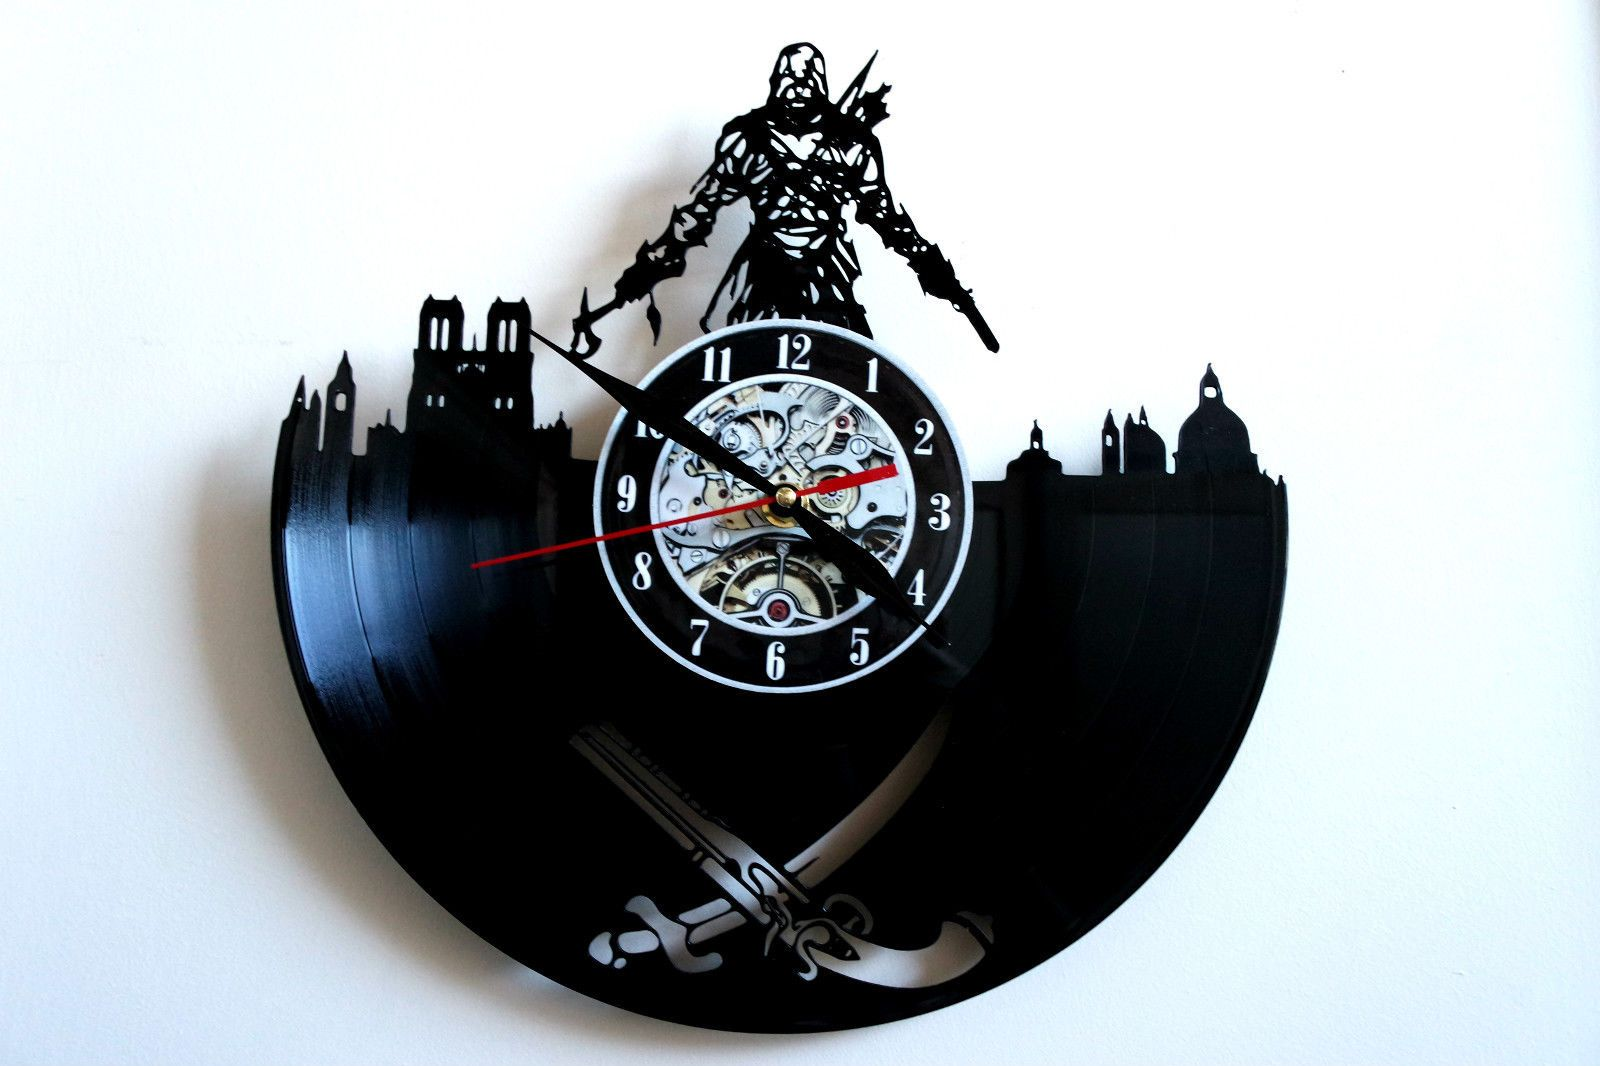 Assassins Creed Design vinyl record wall clock in Maison, Horloges